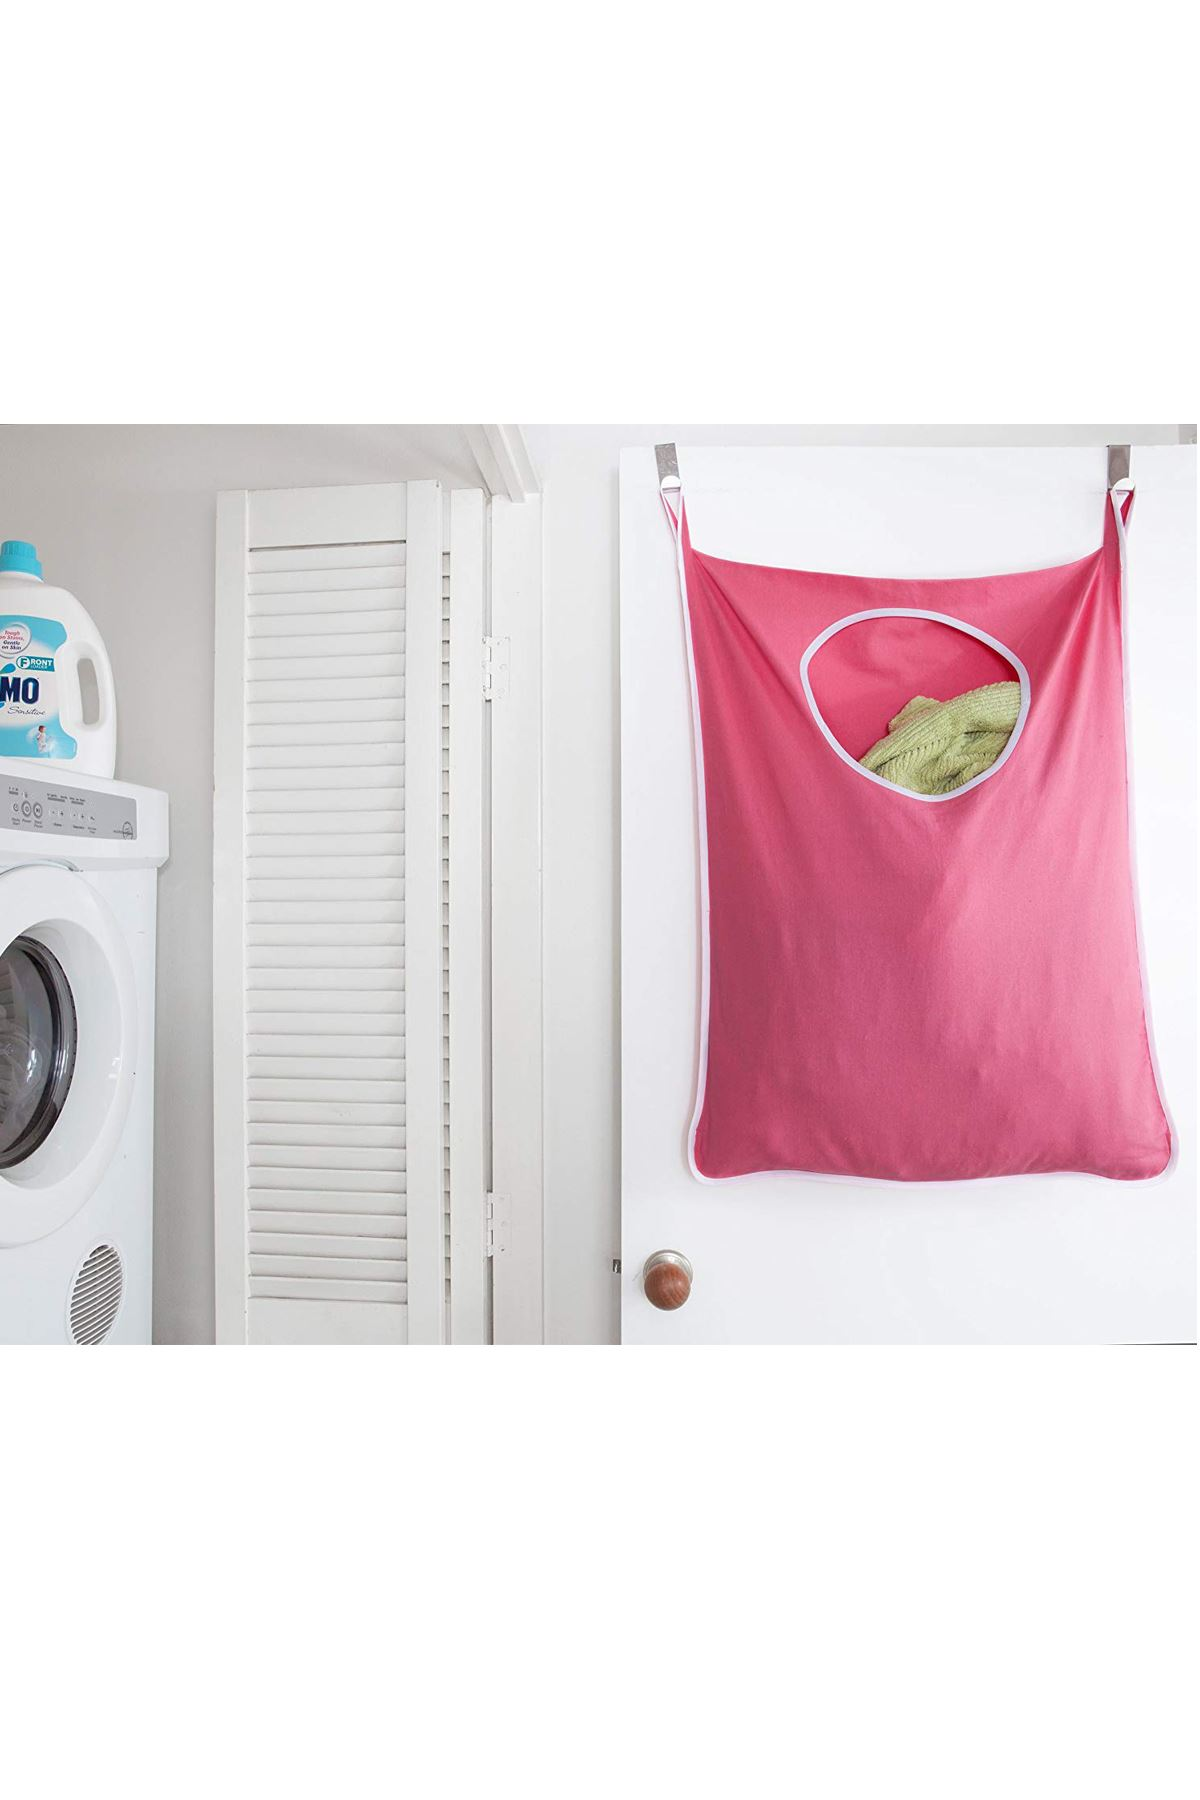 Pink Laundry Toy Hanger Kids Room Bathroom Dirty Clothes Hooked Behind Door Wall Model Practical Household Items Storage